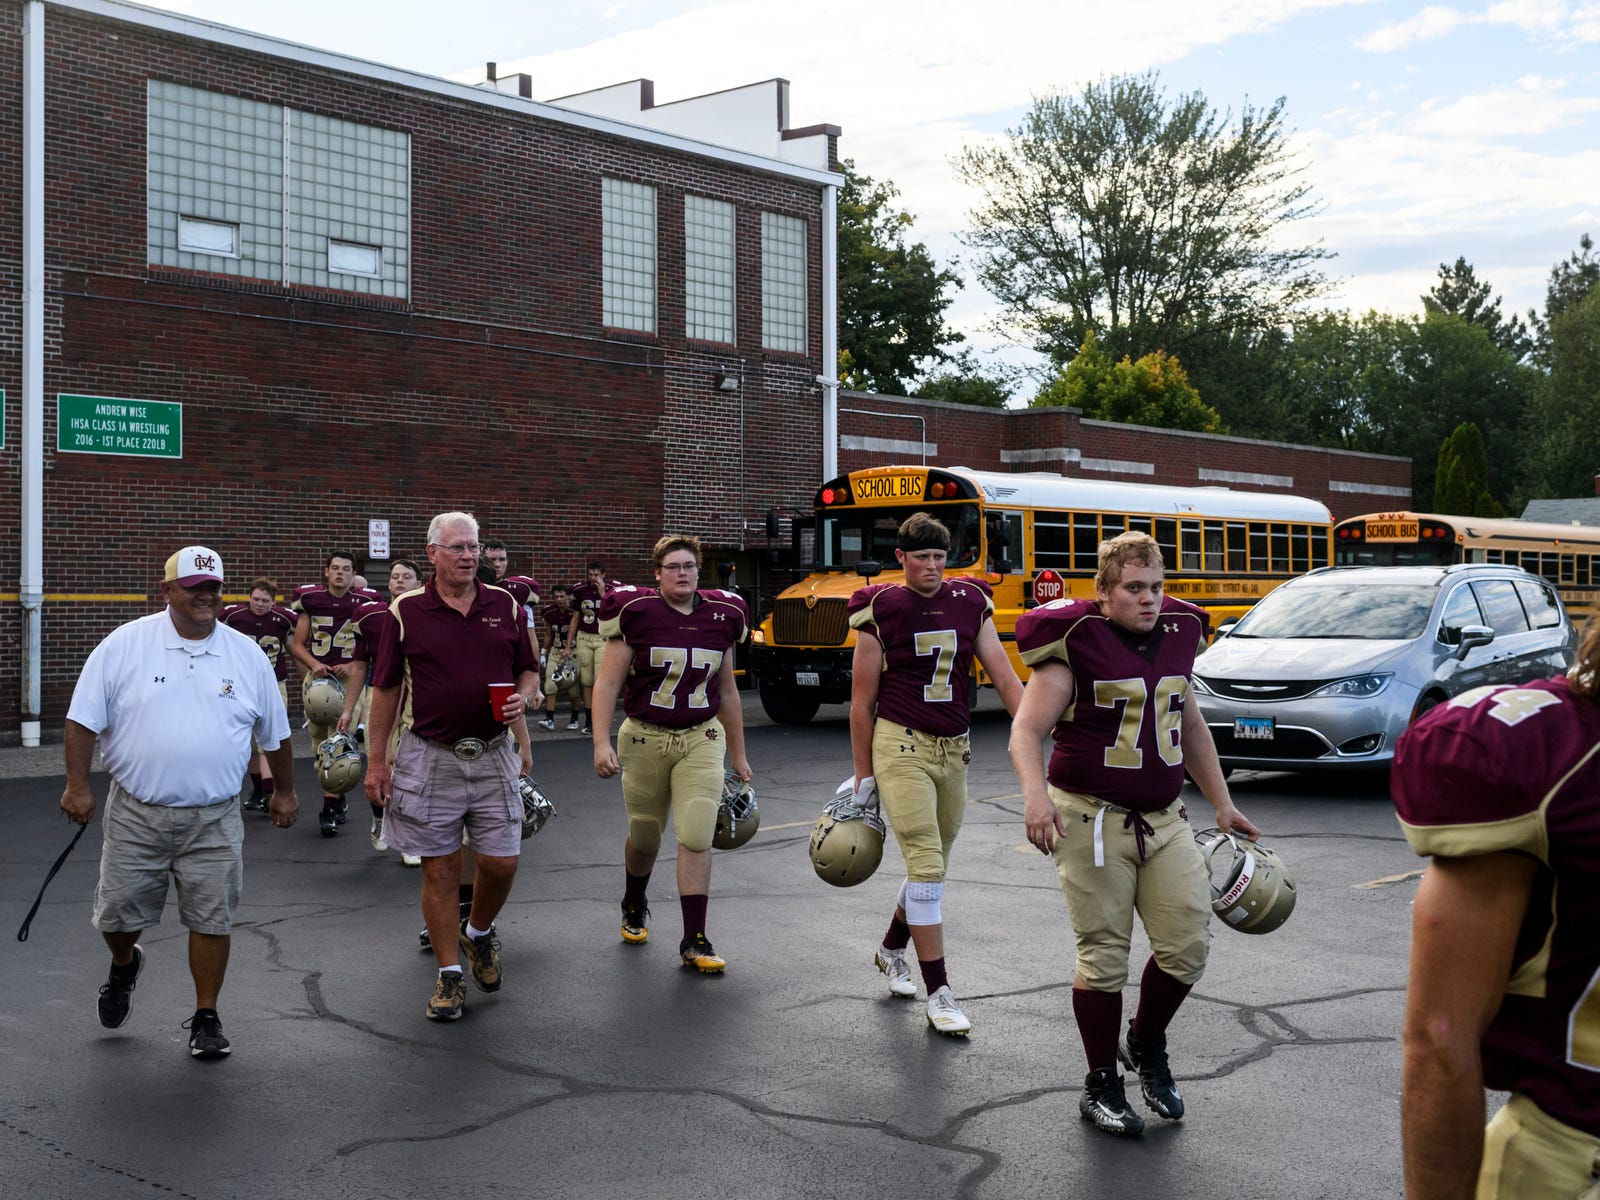 After bussing up to the top of the hill, the Mount Carmel Golden Aces walk into the locker room to prepare for their Homecoming game against the Washington Hatchets at Riverview Stadium, known as the Snake Pit, in Mount Carmel, Ill., Friday, Sept. 21, 2018. The Golden Aces defeated the Hatchets 61-20.